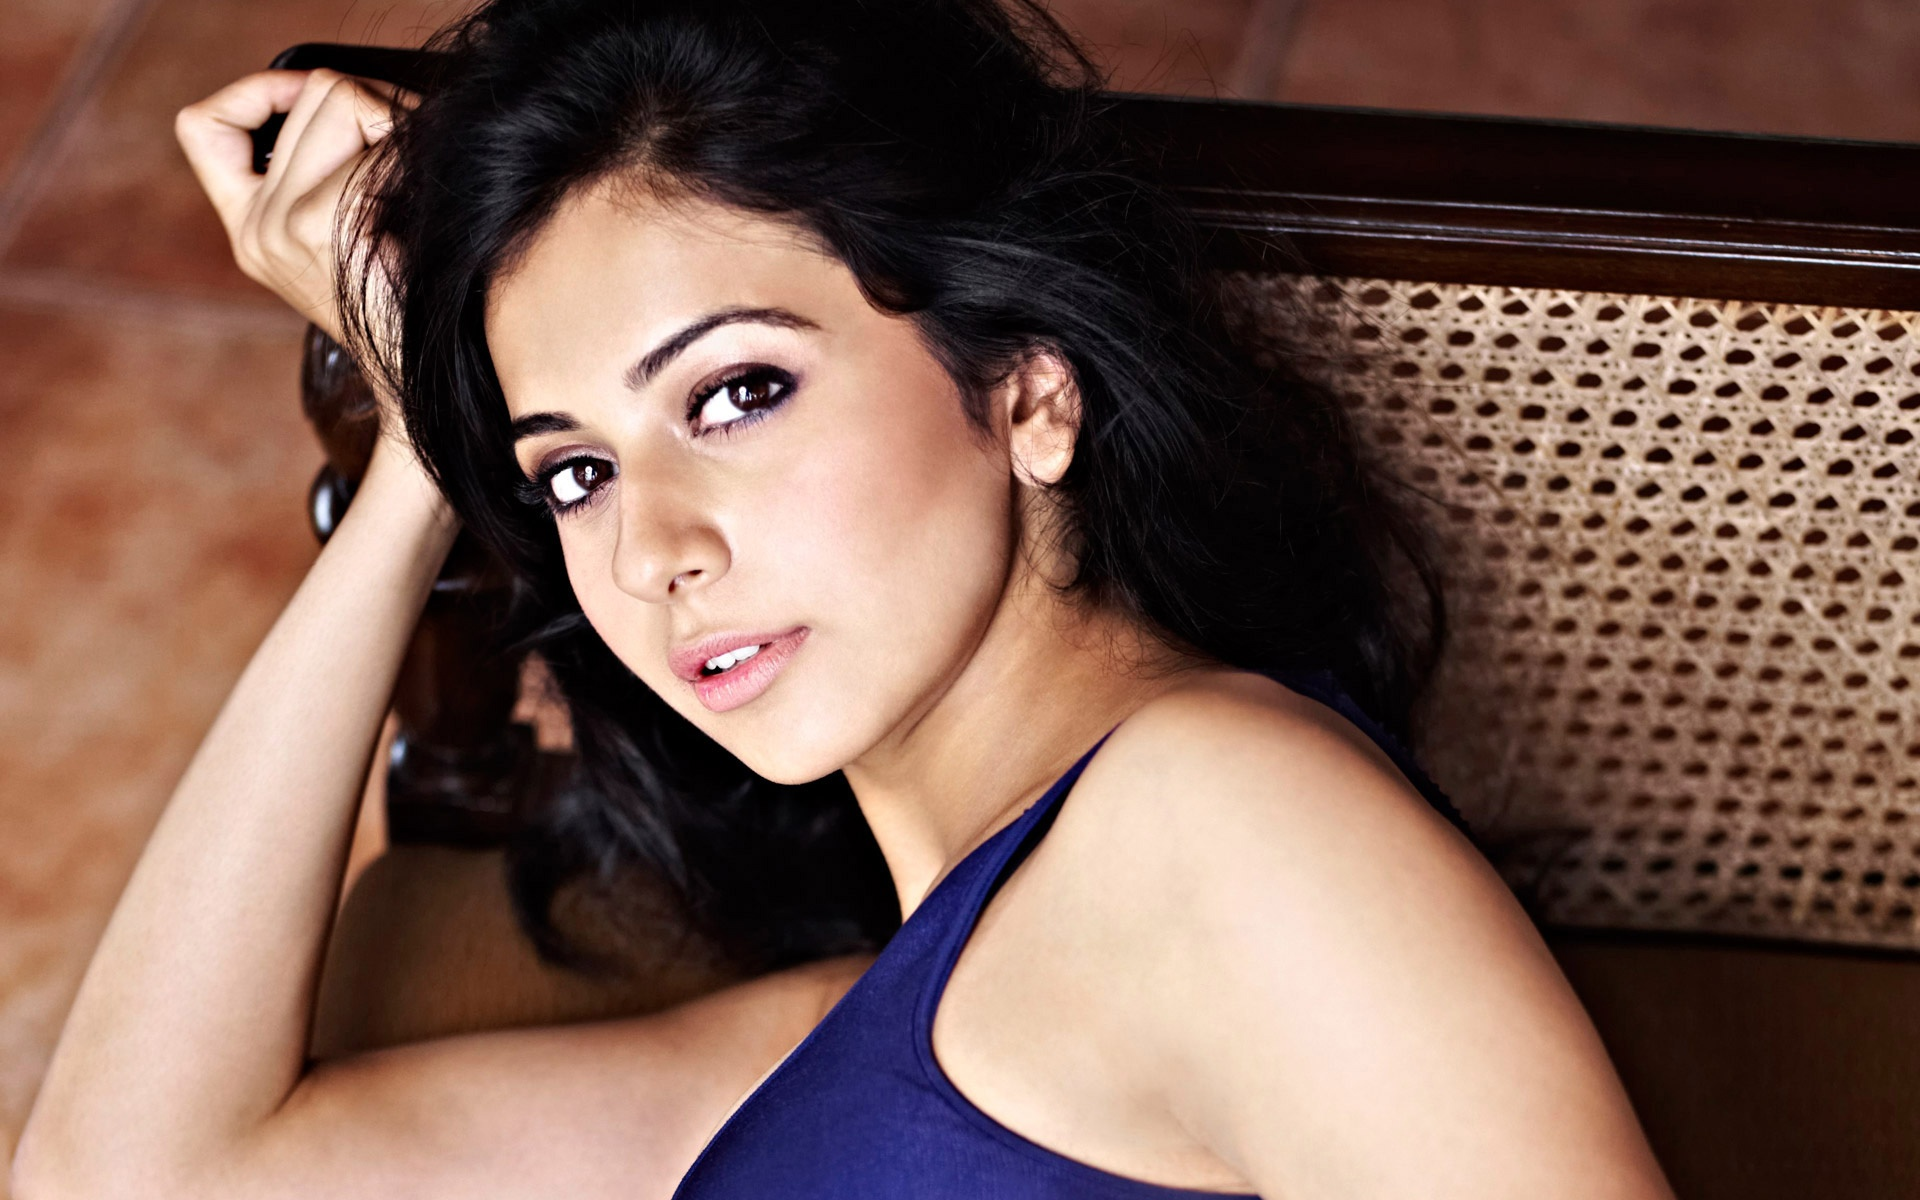 Indian female model wallpapers for free download about 1620 model rakul preet singh voltagebd Images